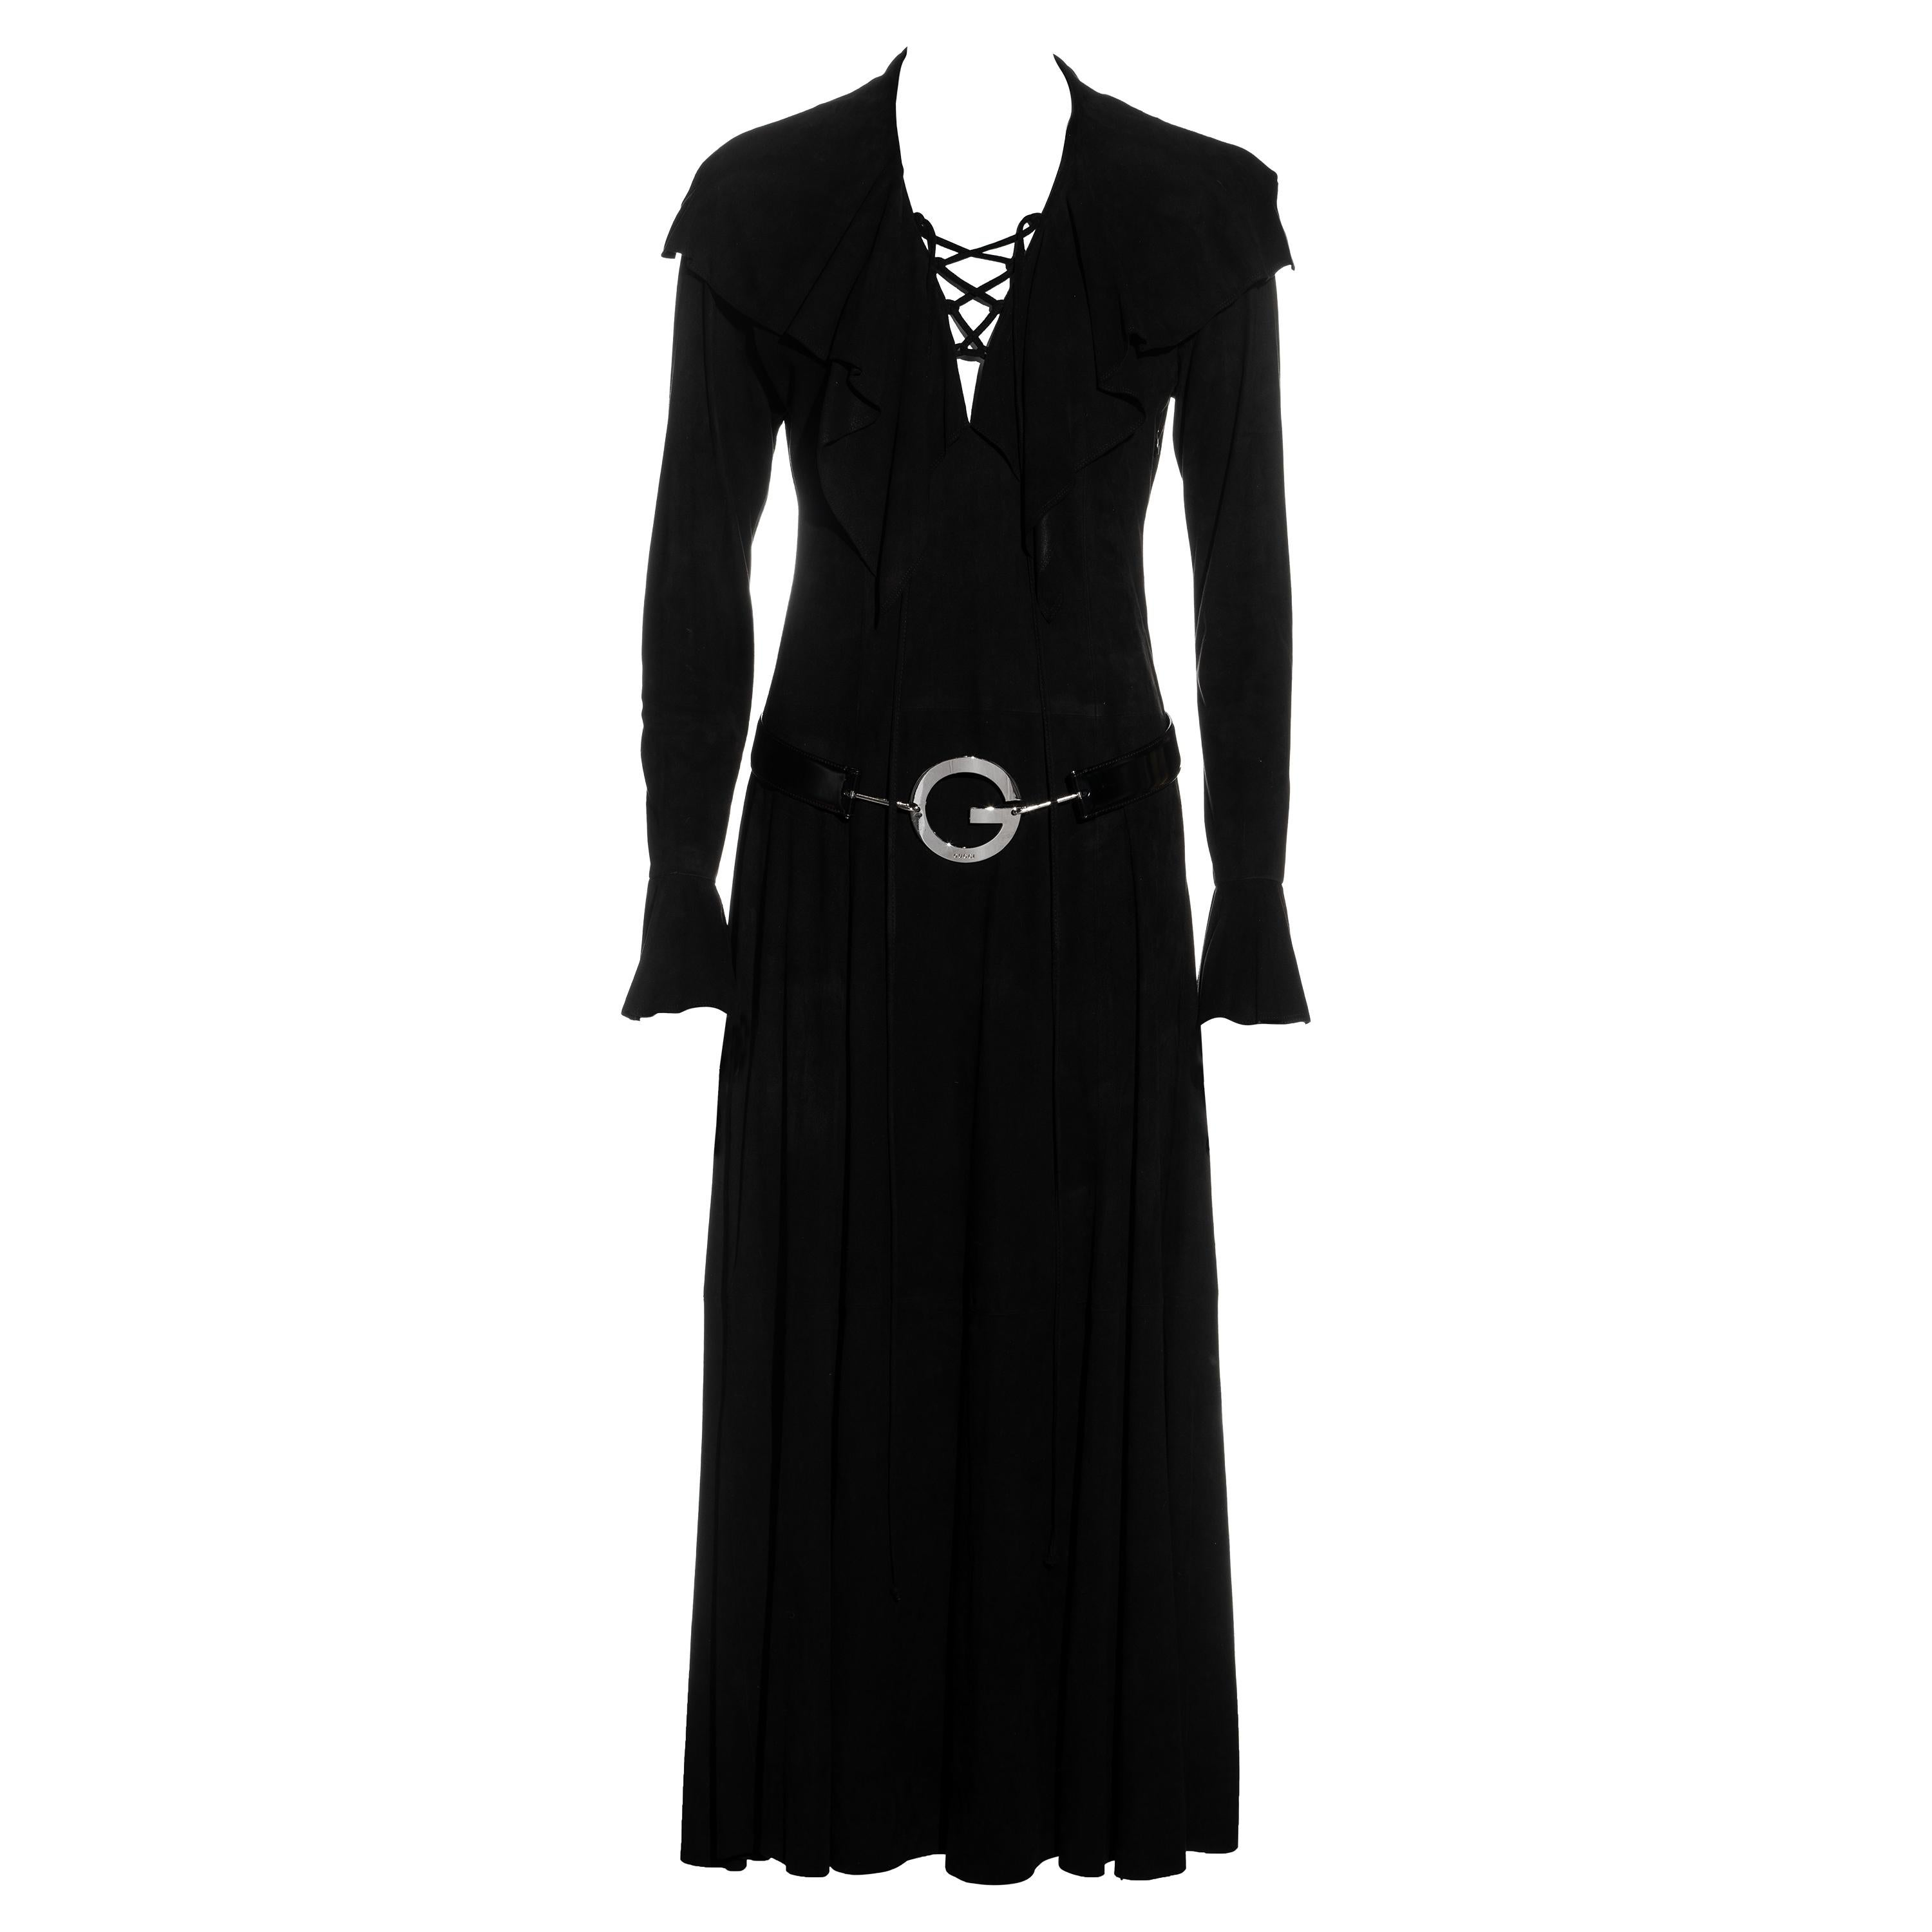 Gucci by Tom Ford suede lace-up maxi dress with 'G' belt, ss 1996